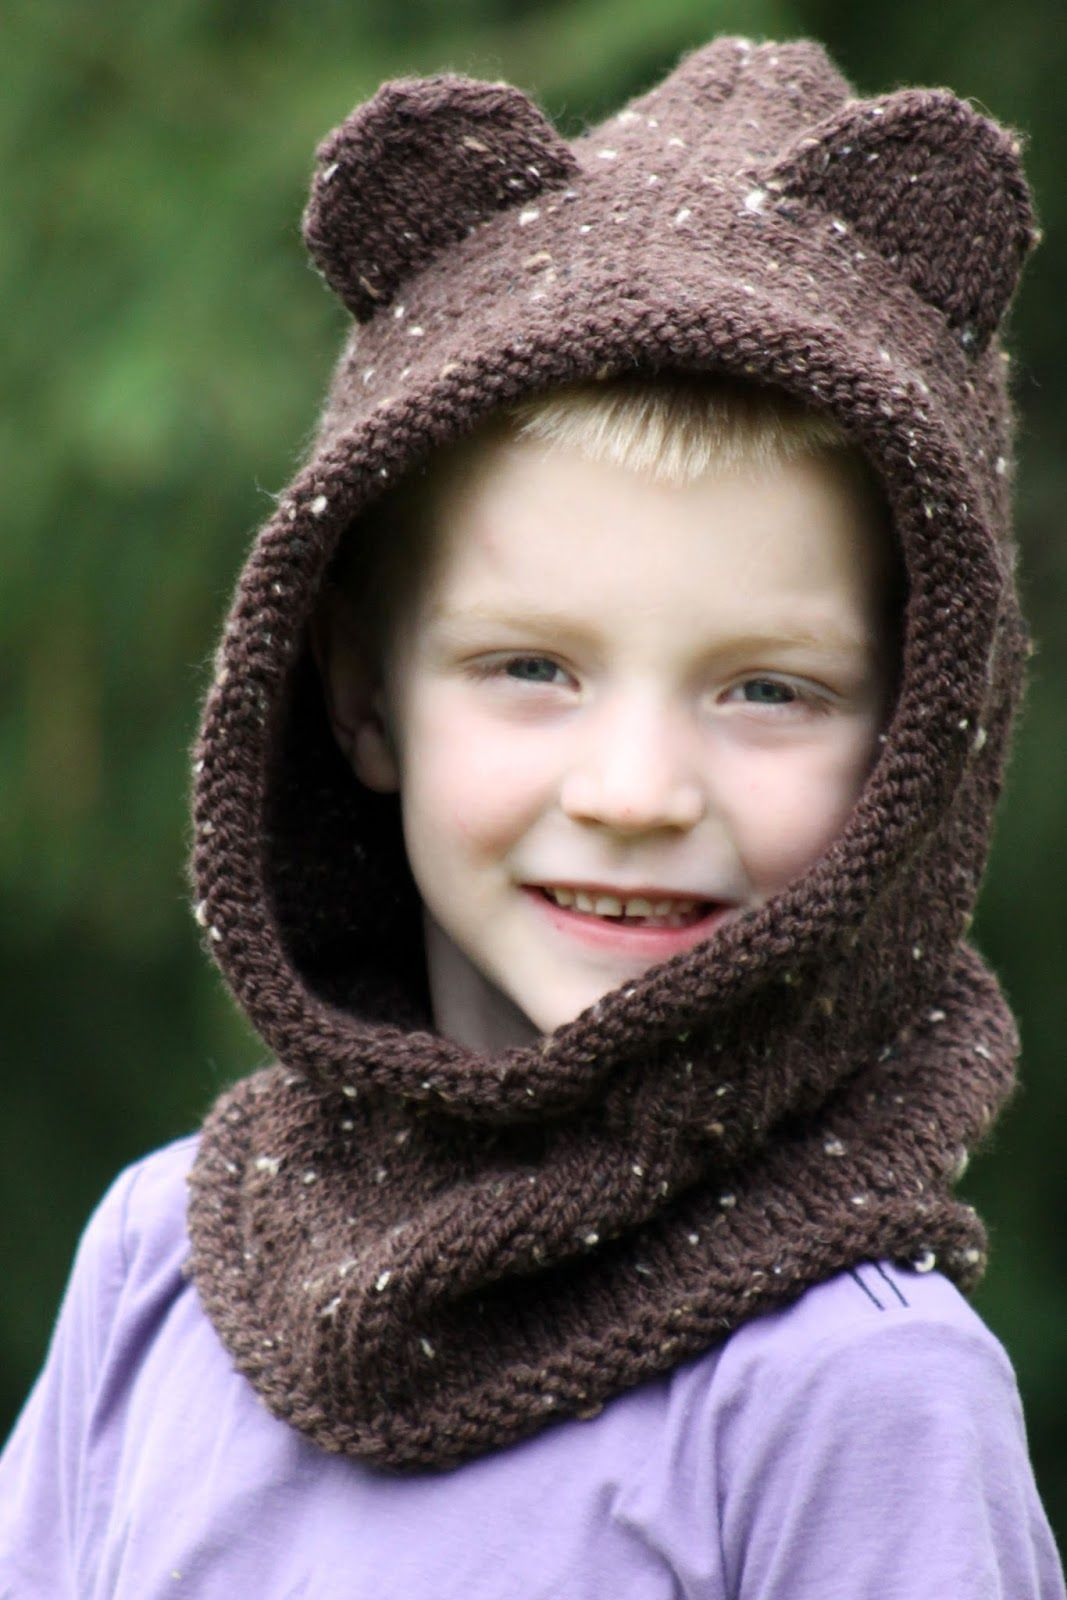 Baby Bear Hooded Cowl | Crafts | Pinterest | Hooded cowl, Knitting ...